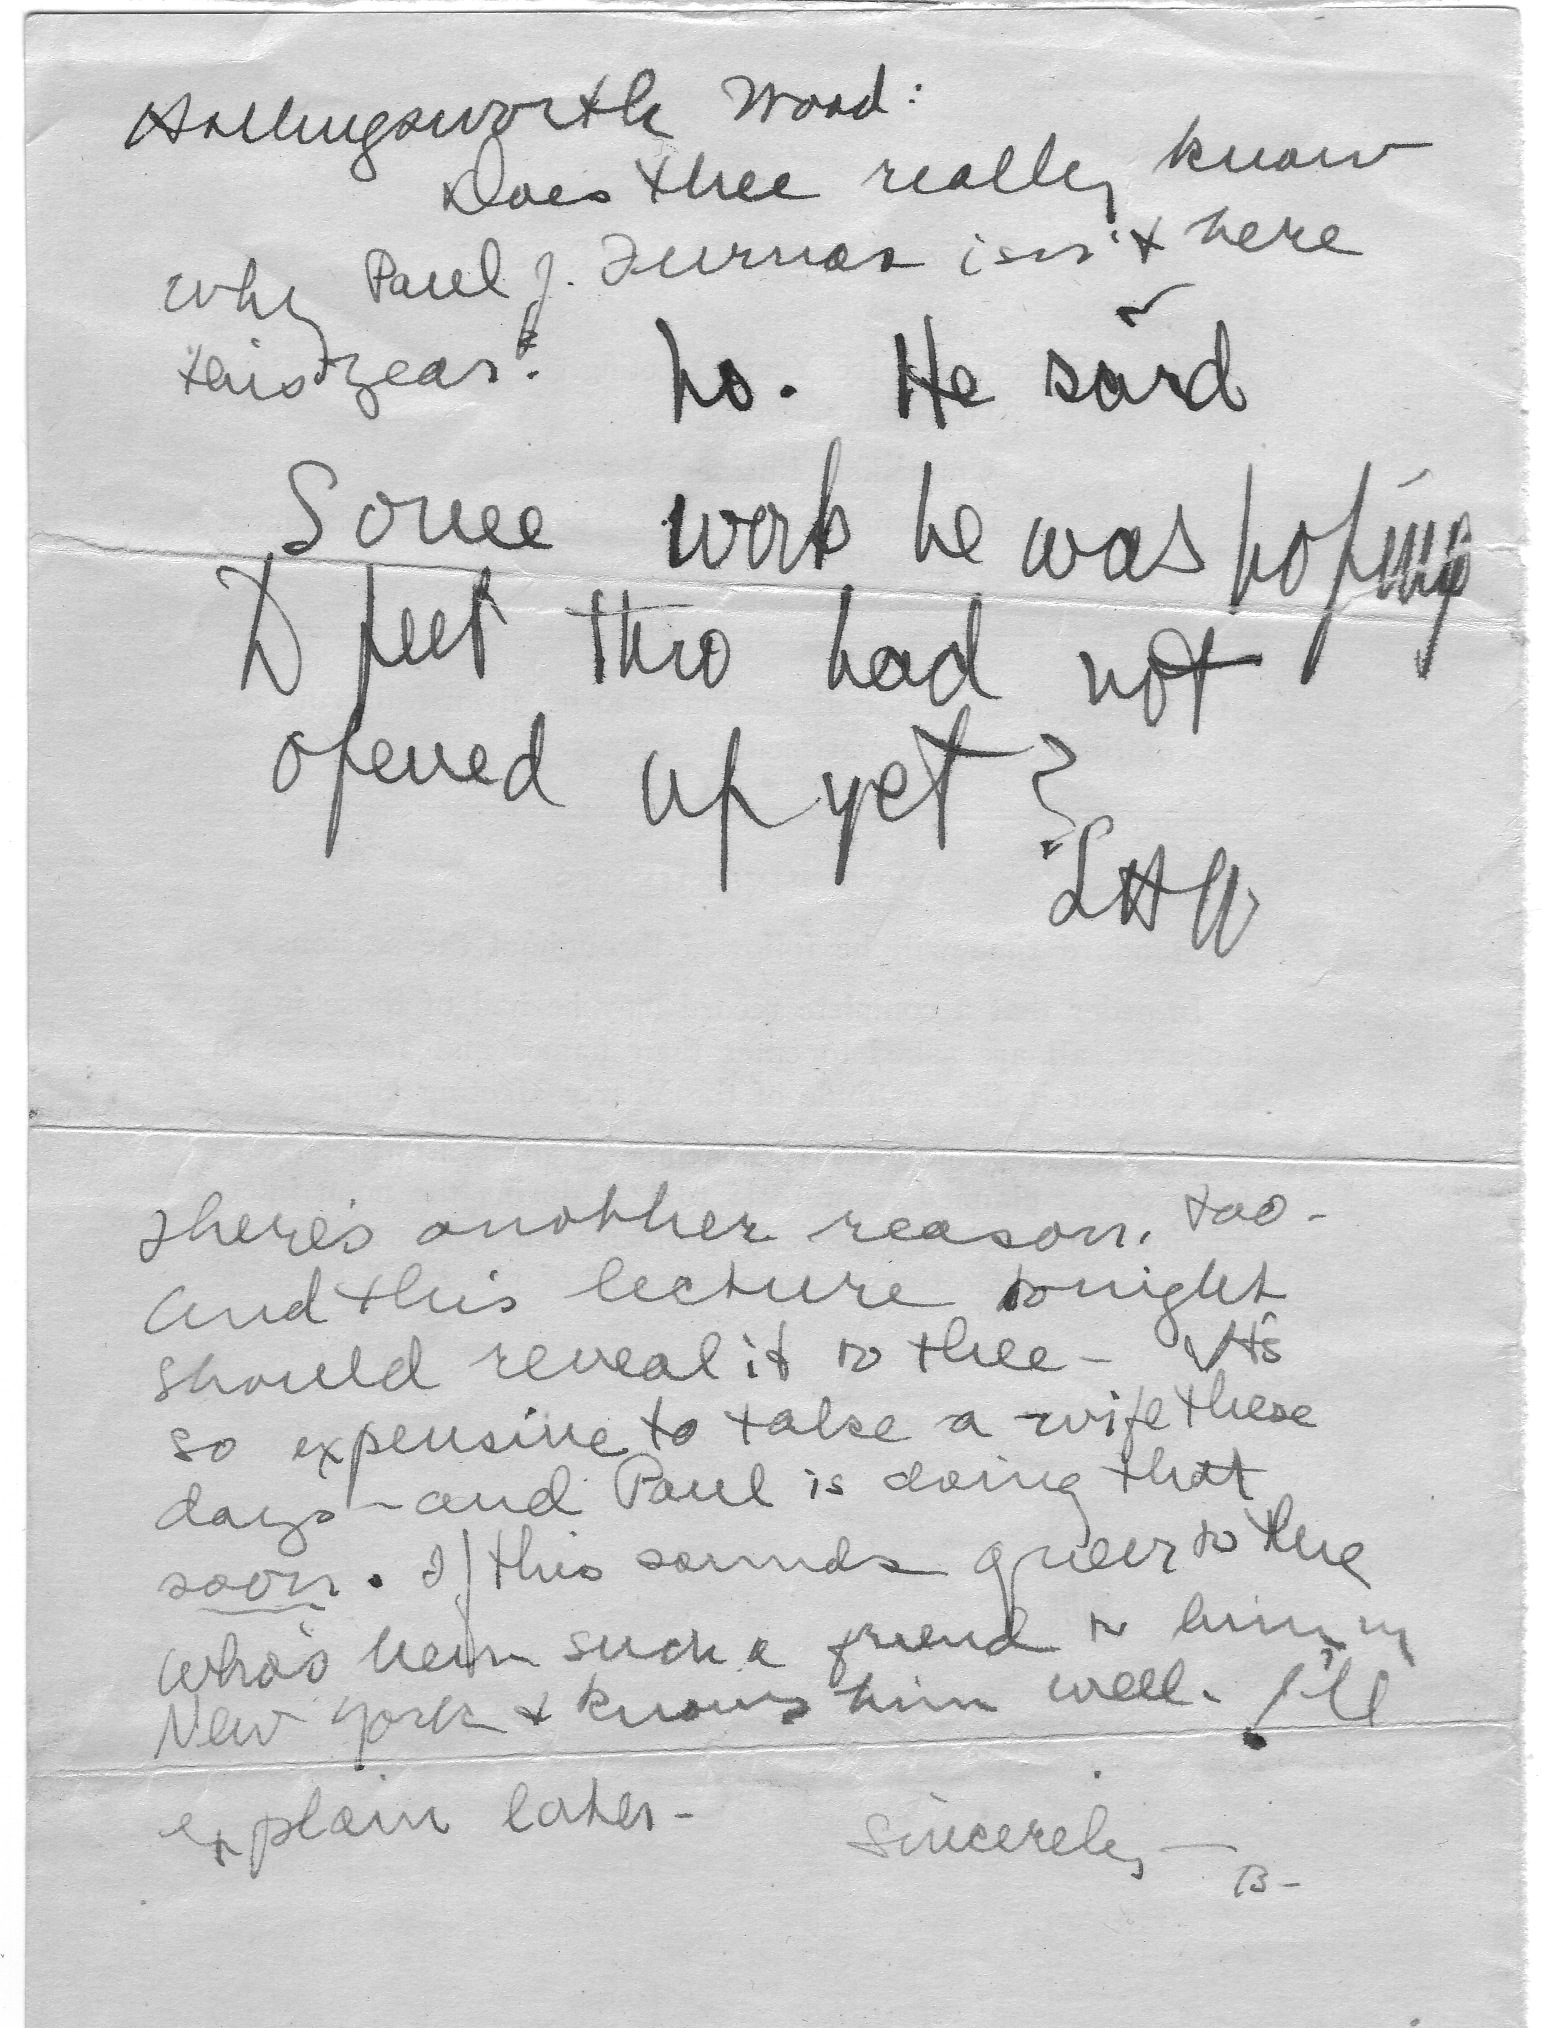 Note passed between Betty and Hollingsworth hinting at her engagement to Paul